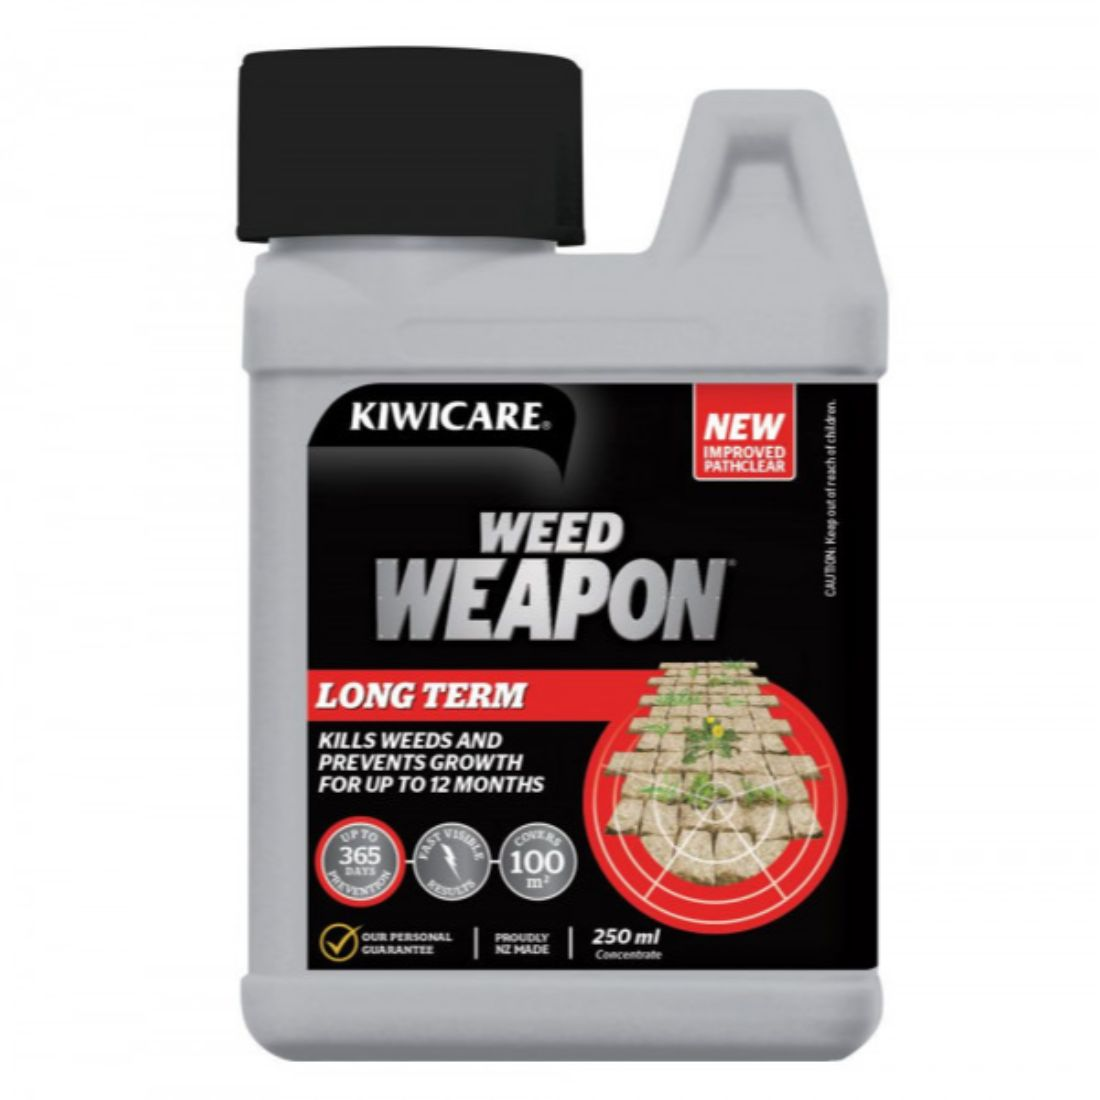 Weed Weapon Long Term Concentrate Weed Control 250ml